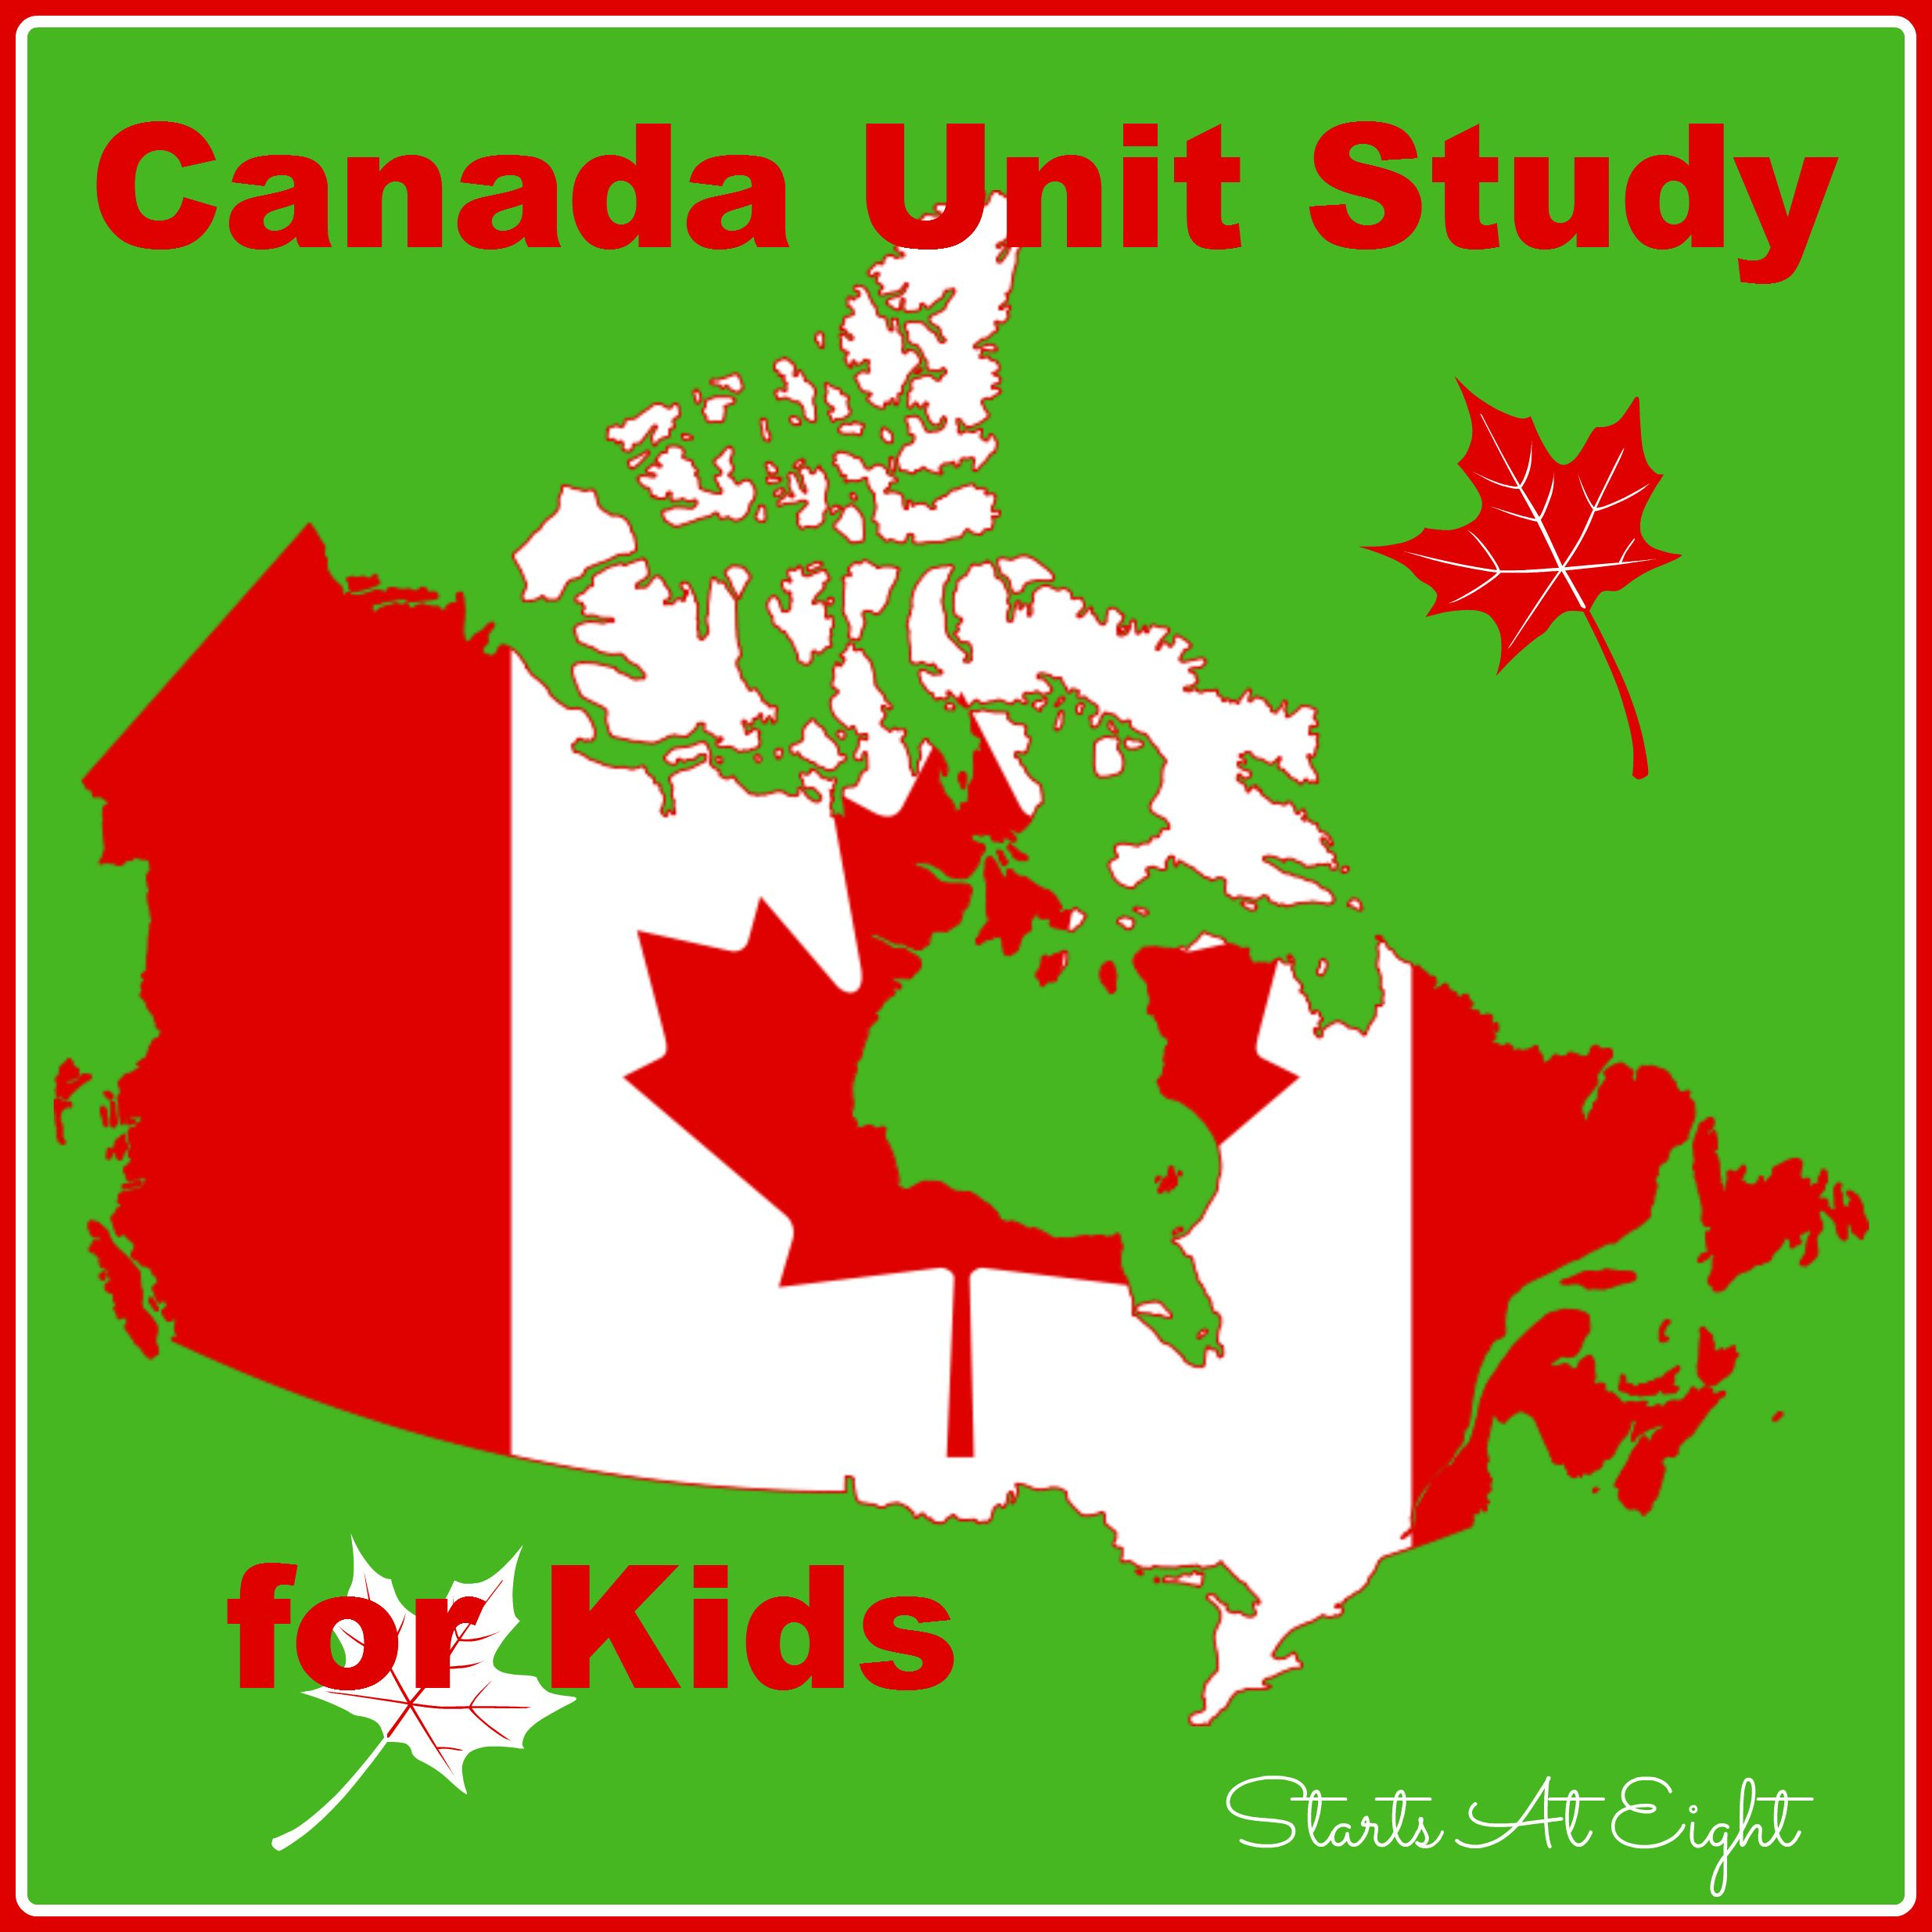 Canada Unit Study for Kids | Unit studies, Learning and Child